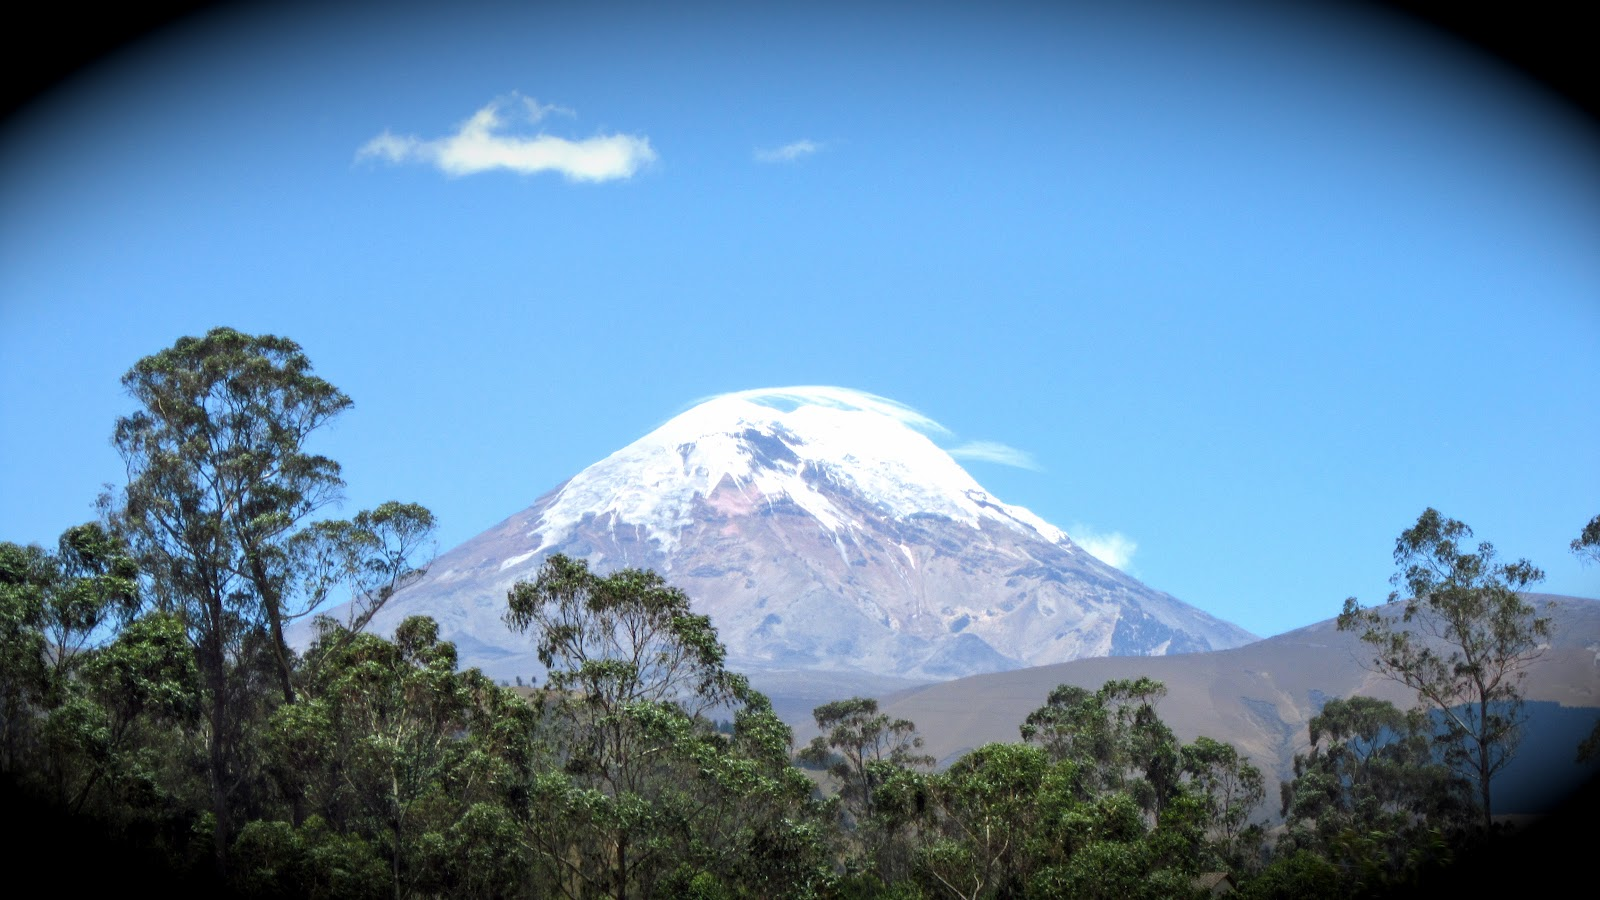 el indio muslim personals E l i n d i o b e l t chile main commodities: au cu deposit description the el indio belt of central chile, some 500 km north of santiago, and 180 km.